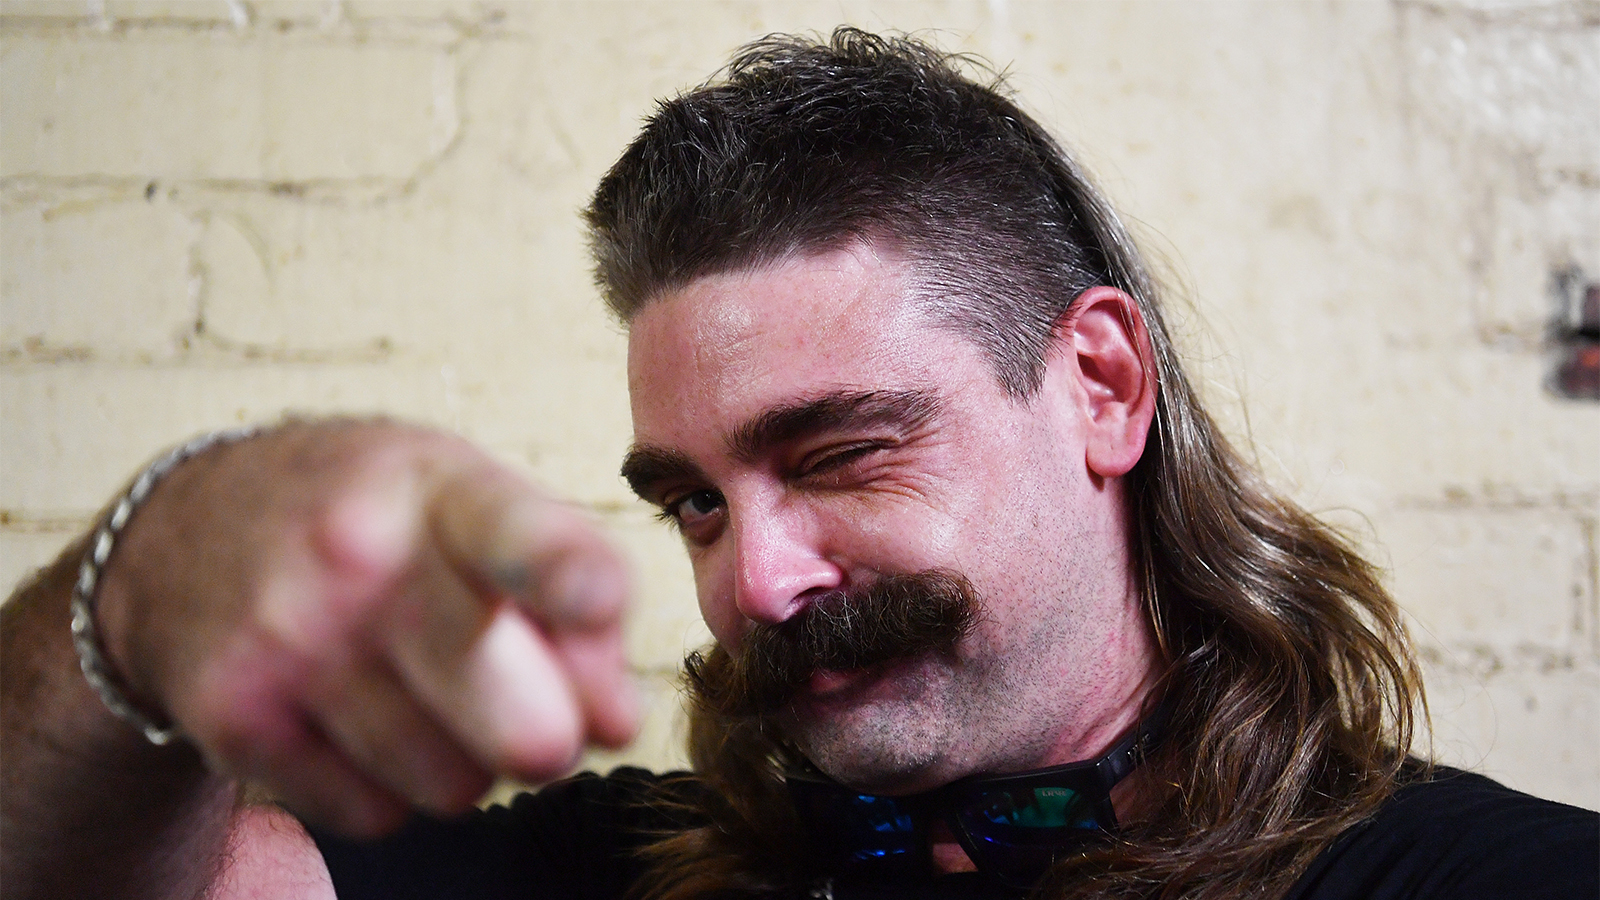 From Ancient Greece to 'Tiger King': The Hilarious History of the Mullet